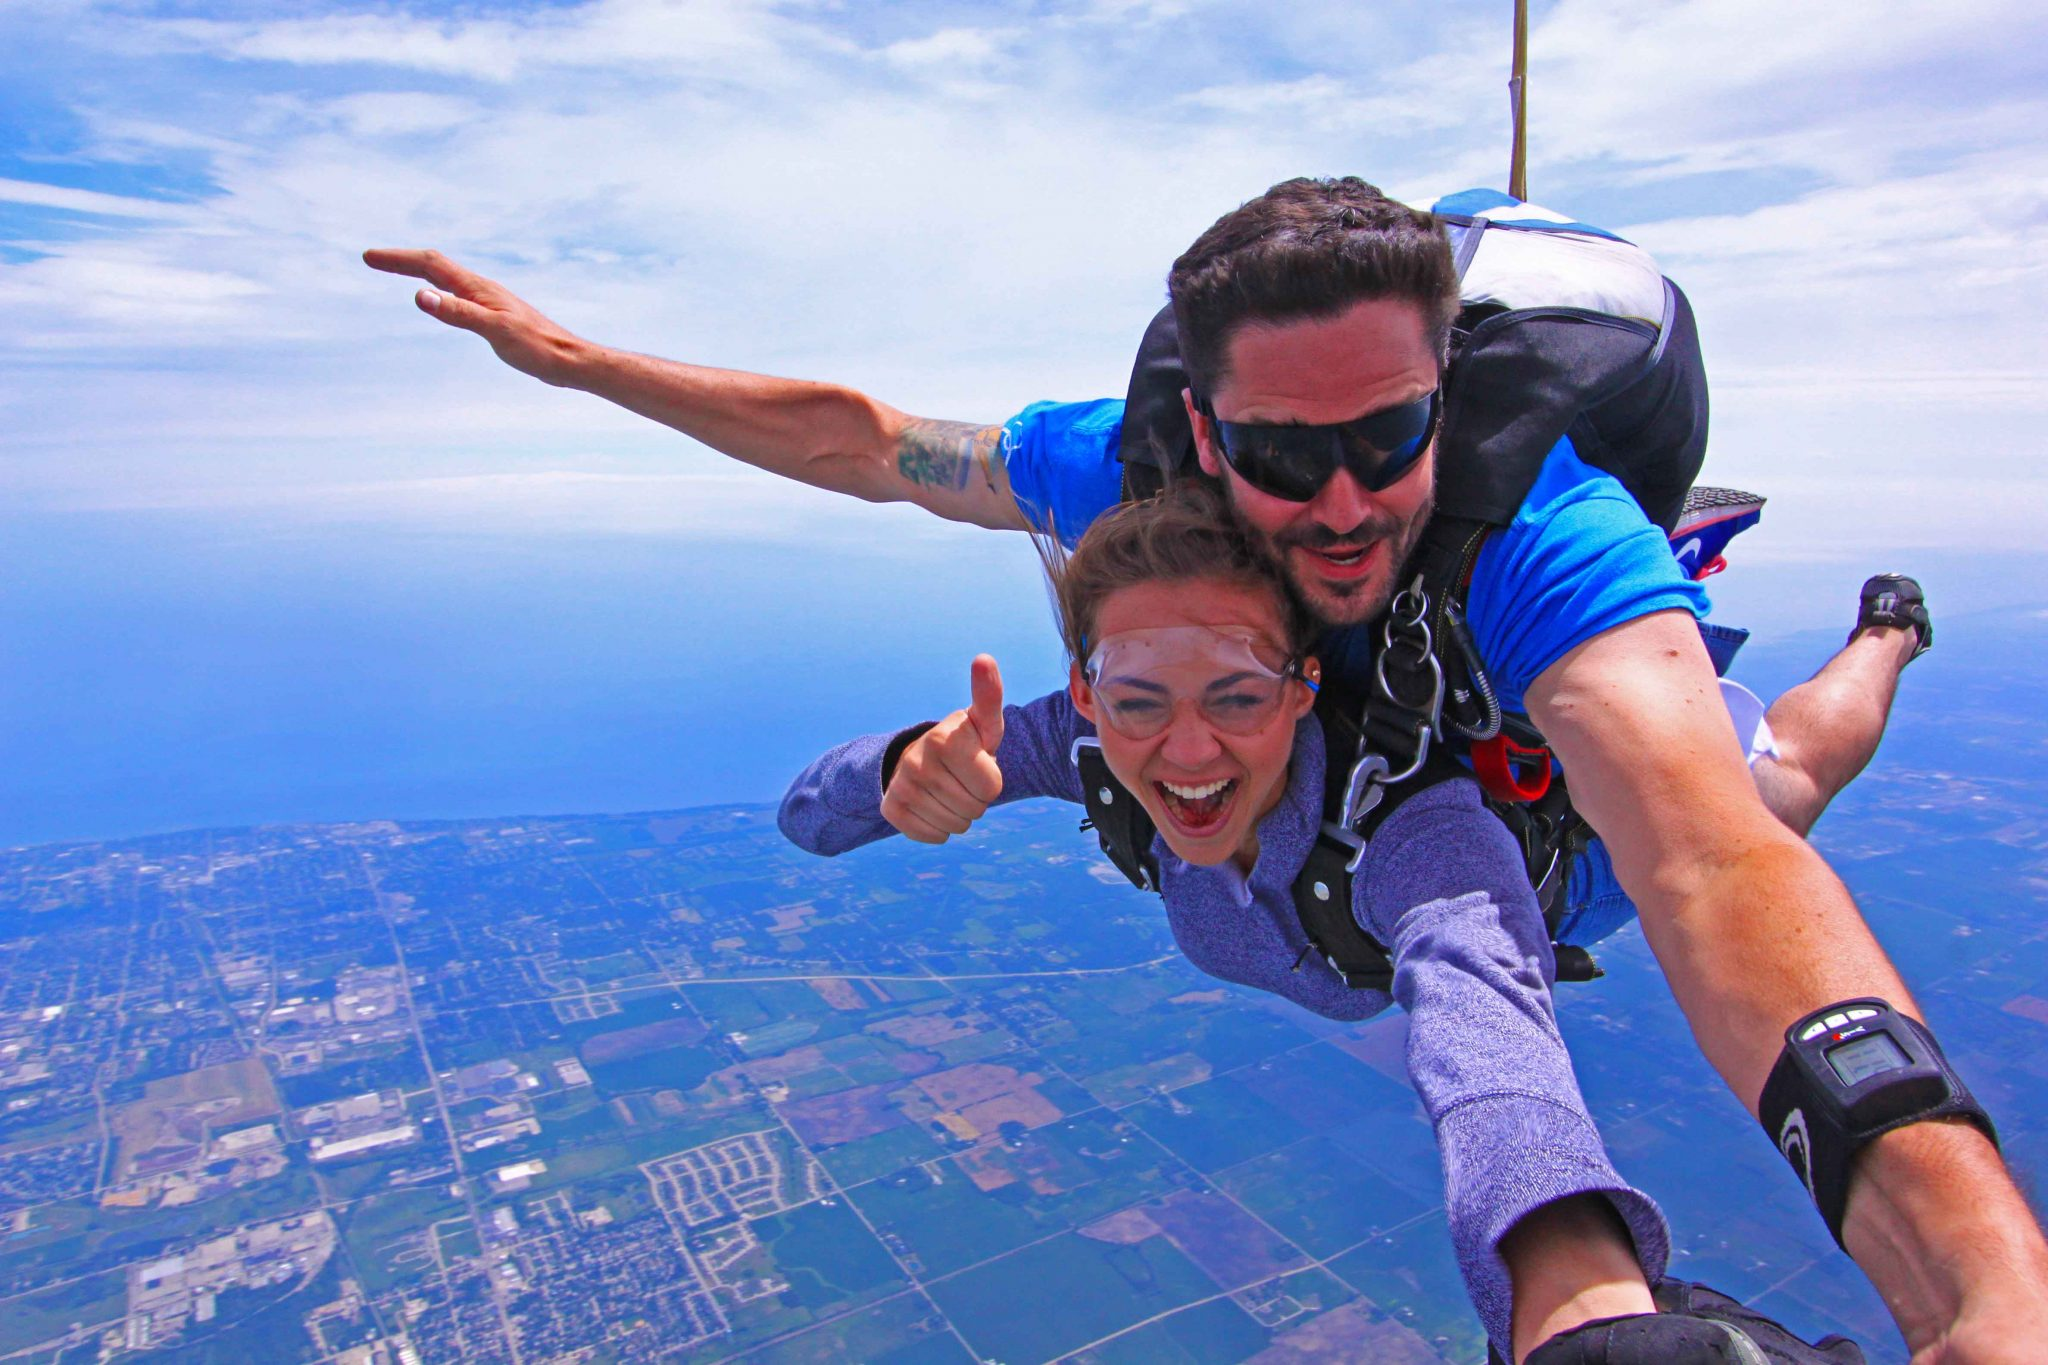 skydive chicago is one of the Go skydiving in chicago trust your first skydive to america's #1 skydiving network and let one of our chicago skydiving experts help make the experience easy and.